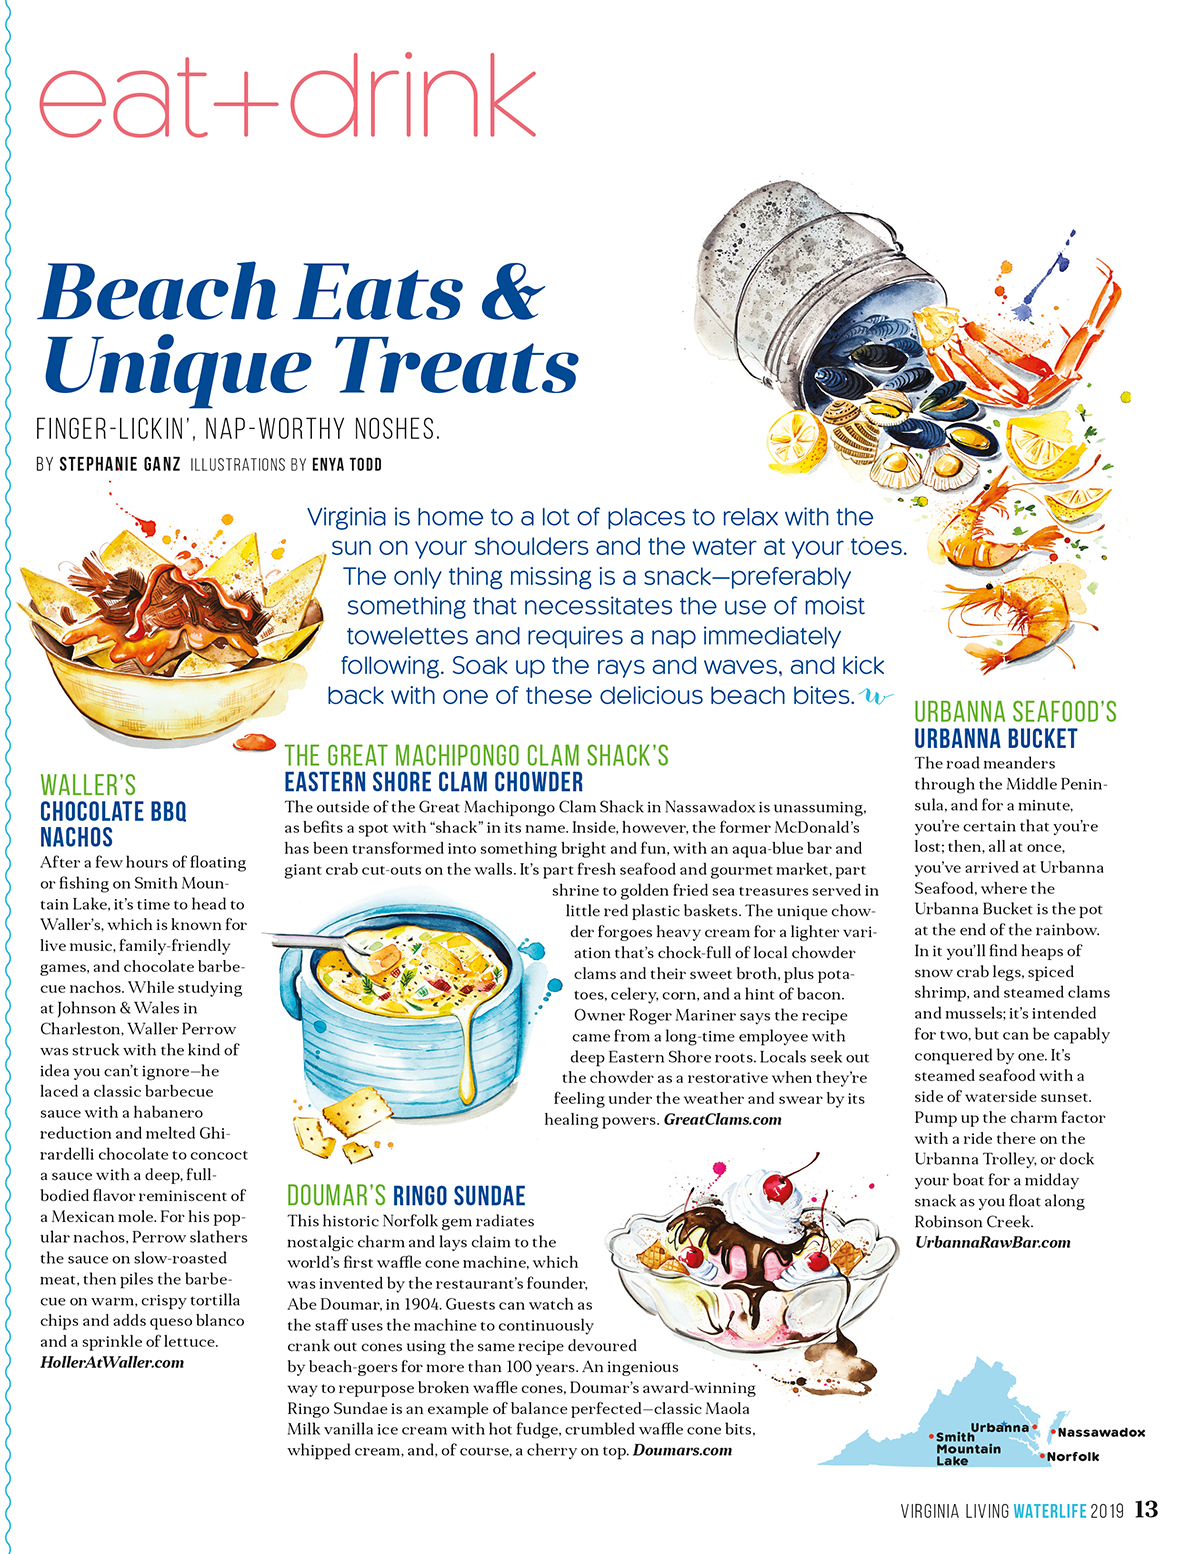 Virginia Living magazine July issue